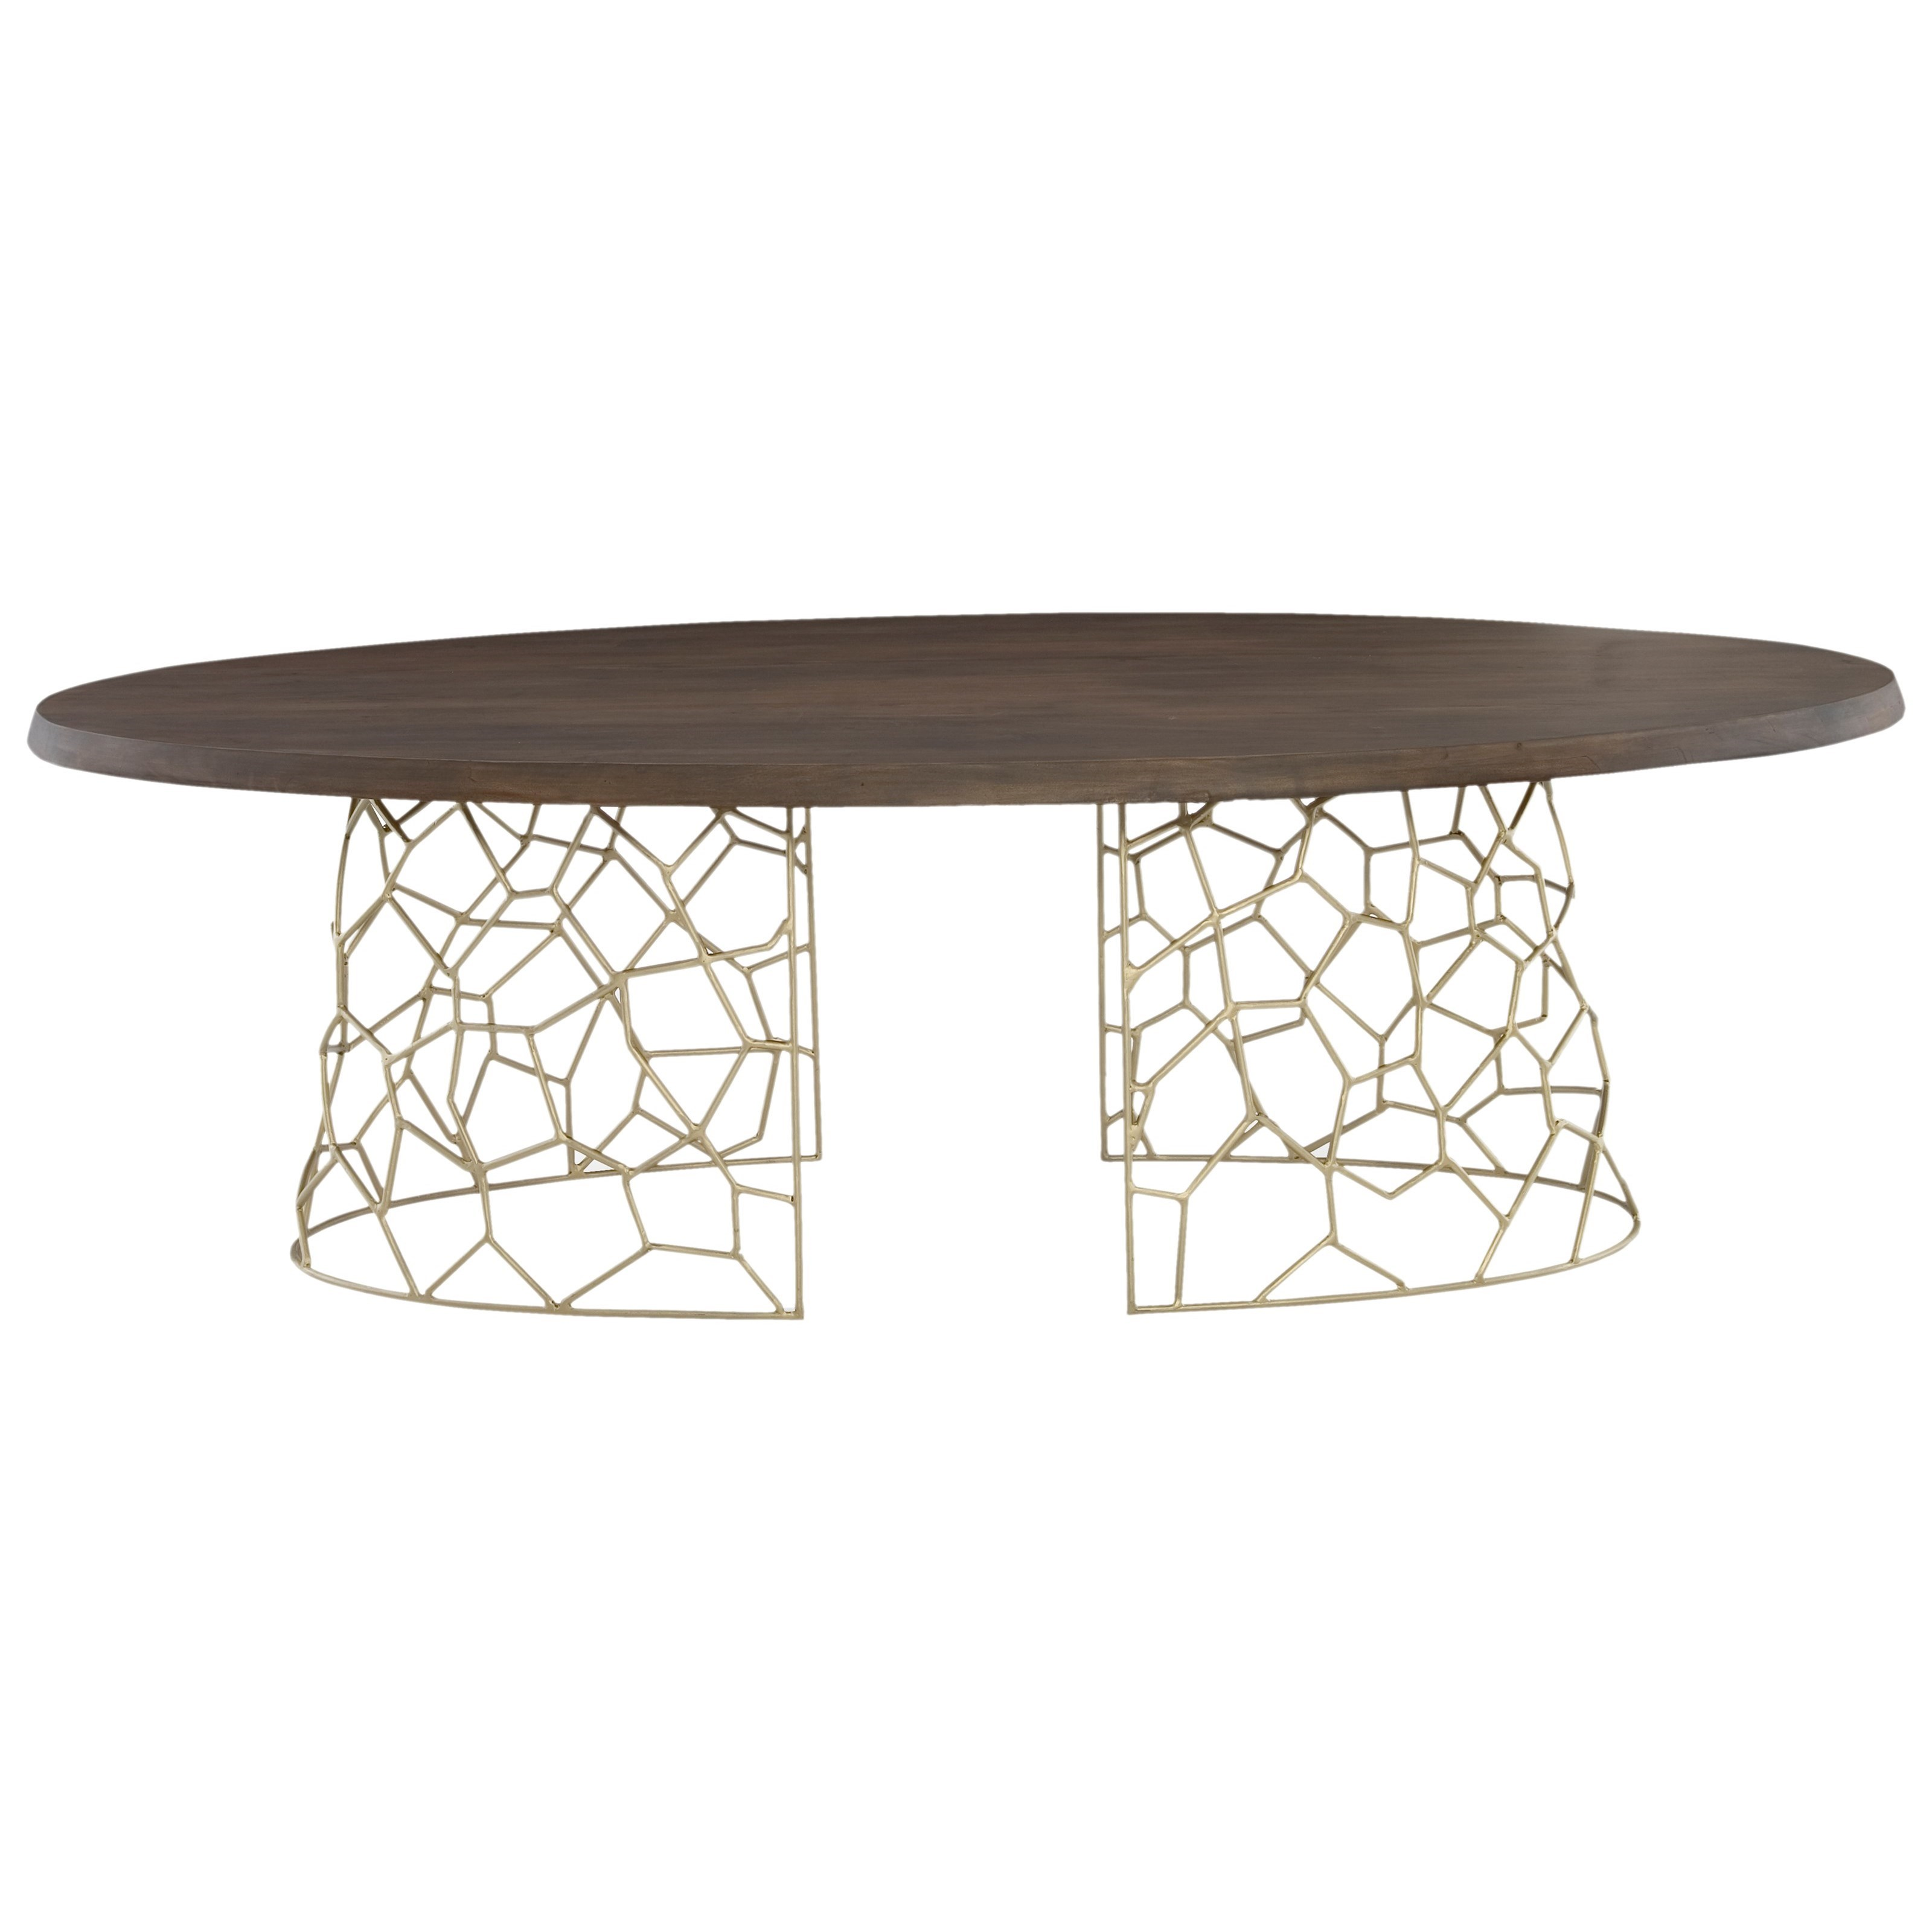 Moe's Home Collection Ario  Dining Table   - Item Number: LX-1045-03